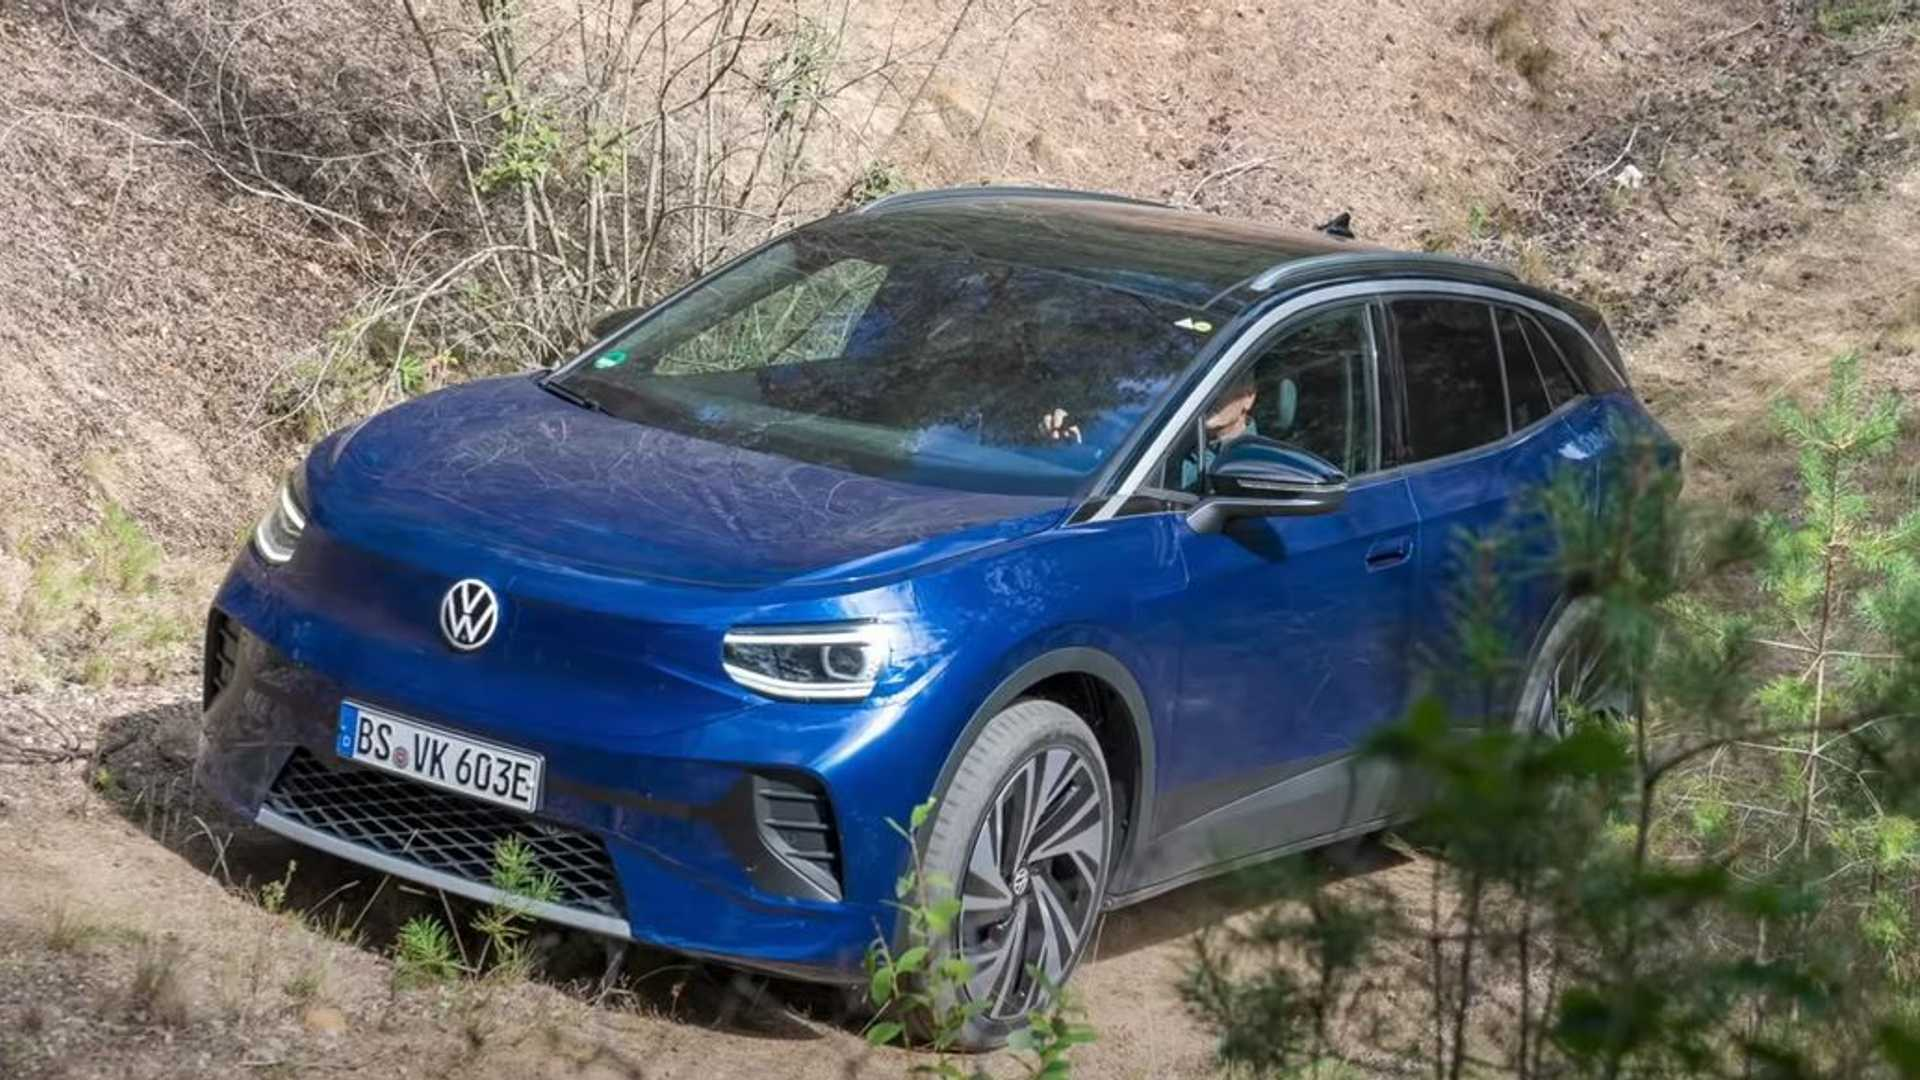 2021 Volkswagen ID.4 Electric SUV Prototype: First Drive ...